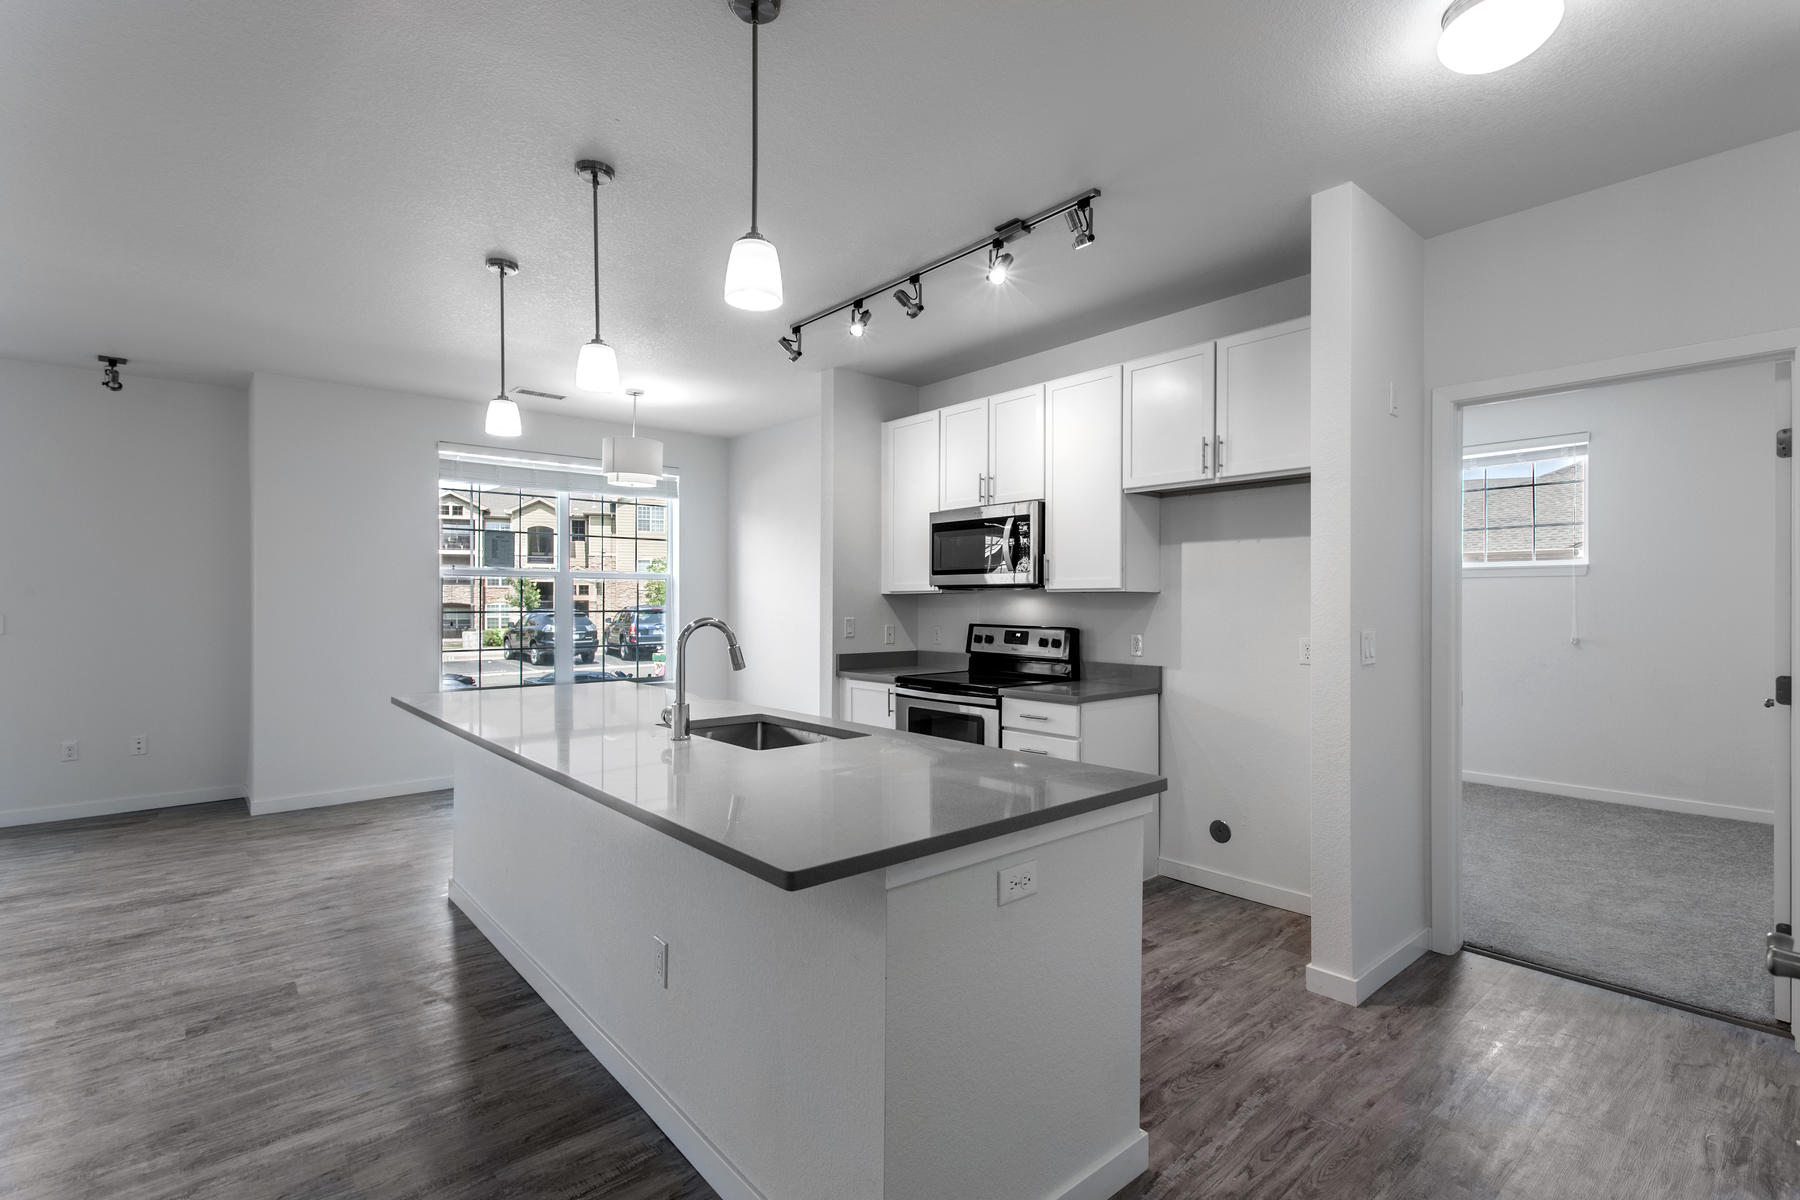 Property por un Venta en New model is now open. Please join us as we celebrate the next release 17353 Wilde Ln #102 C, Bldg 6 Parker, Colorado 80134 Estados Unidos